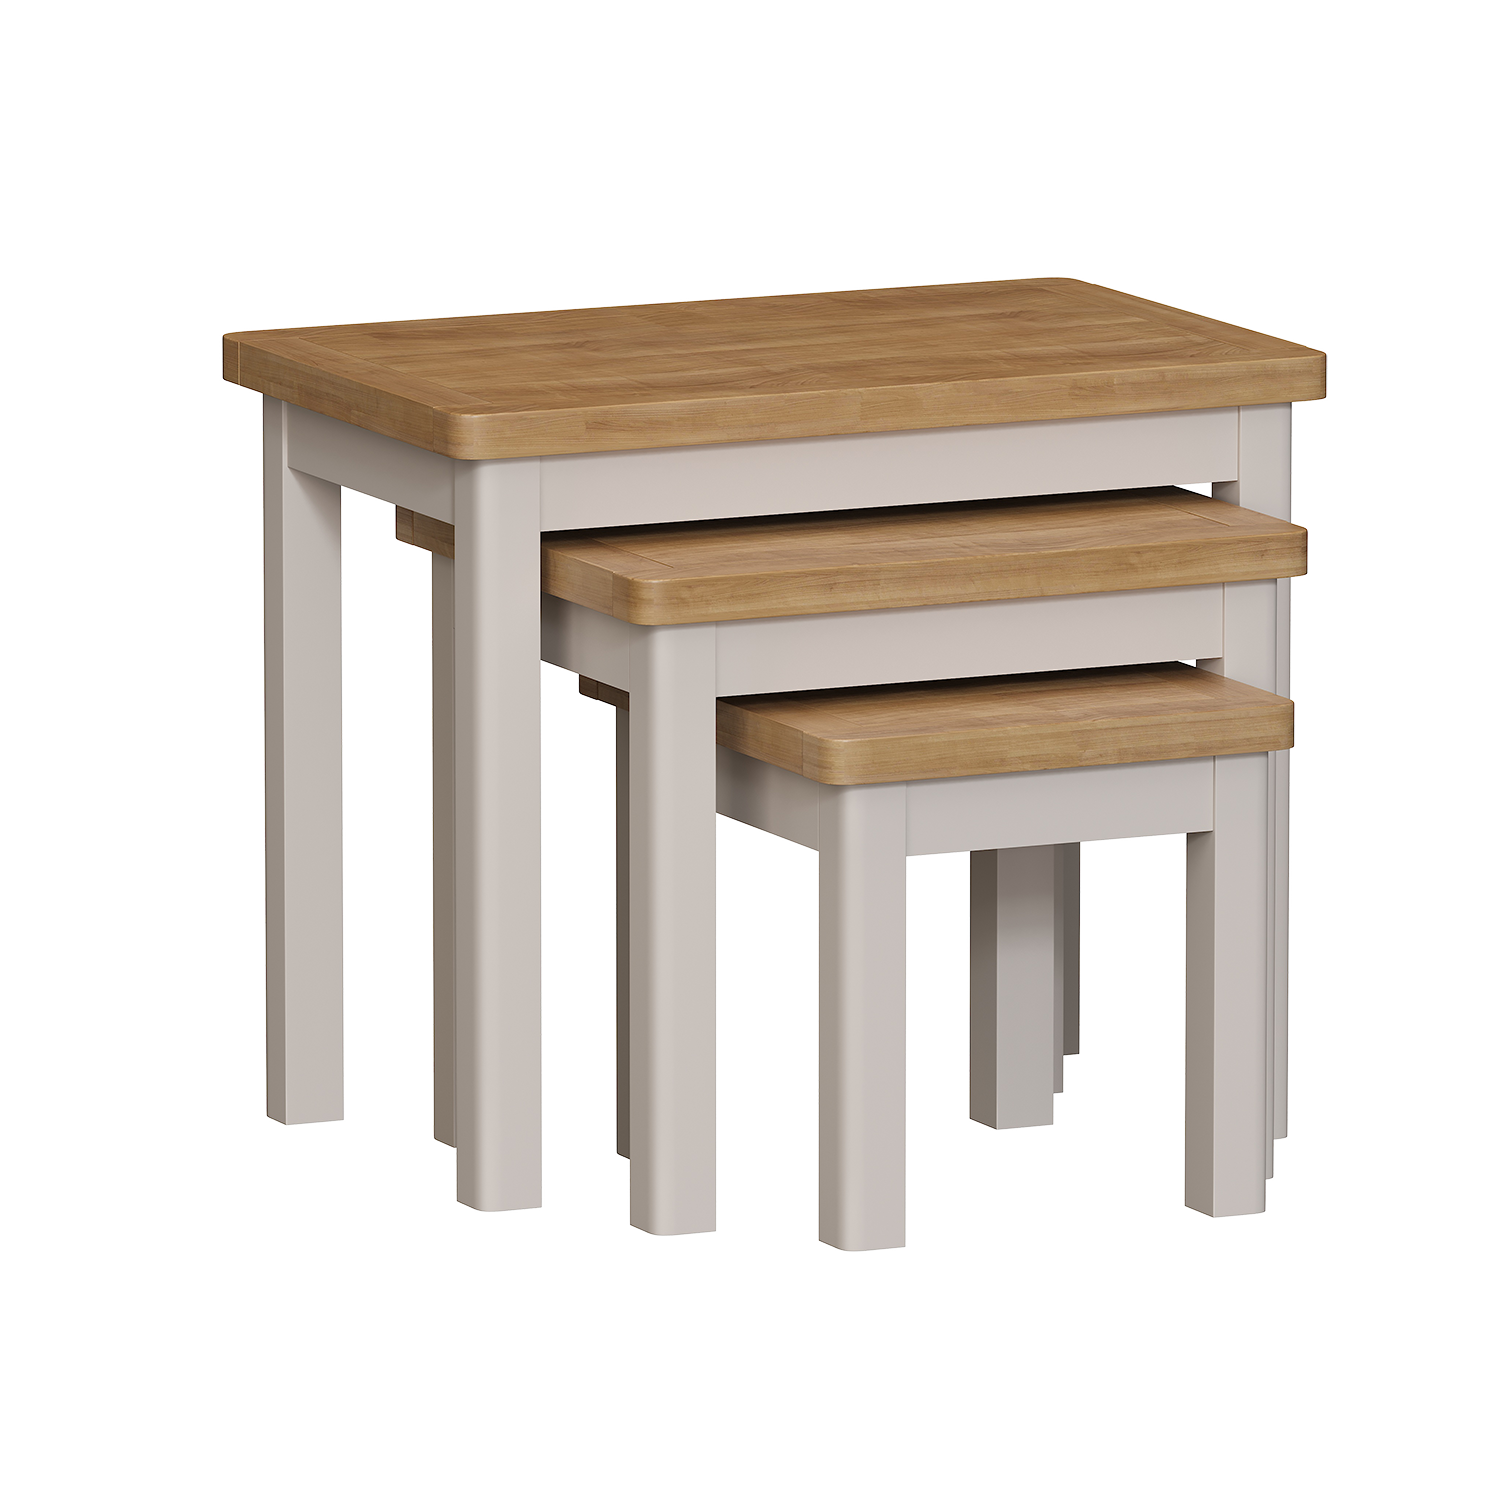 Chiltern Dove Nest of 3 Tables